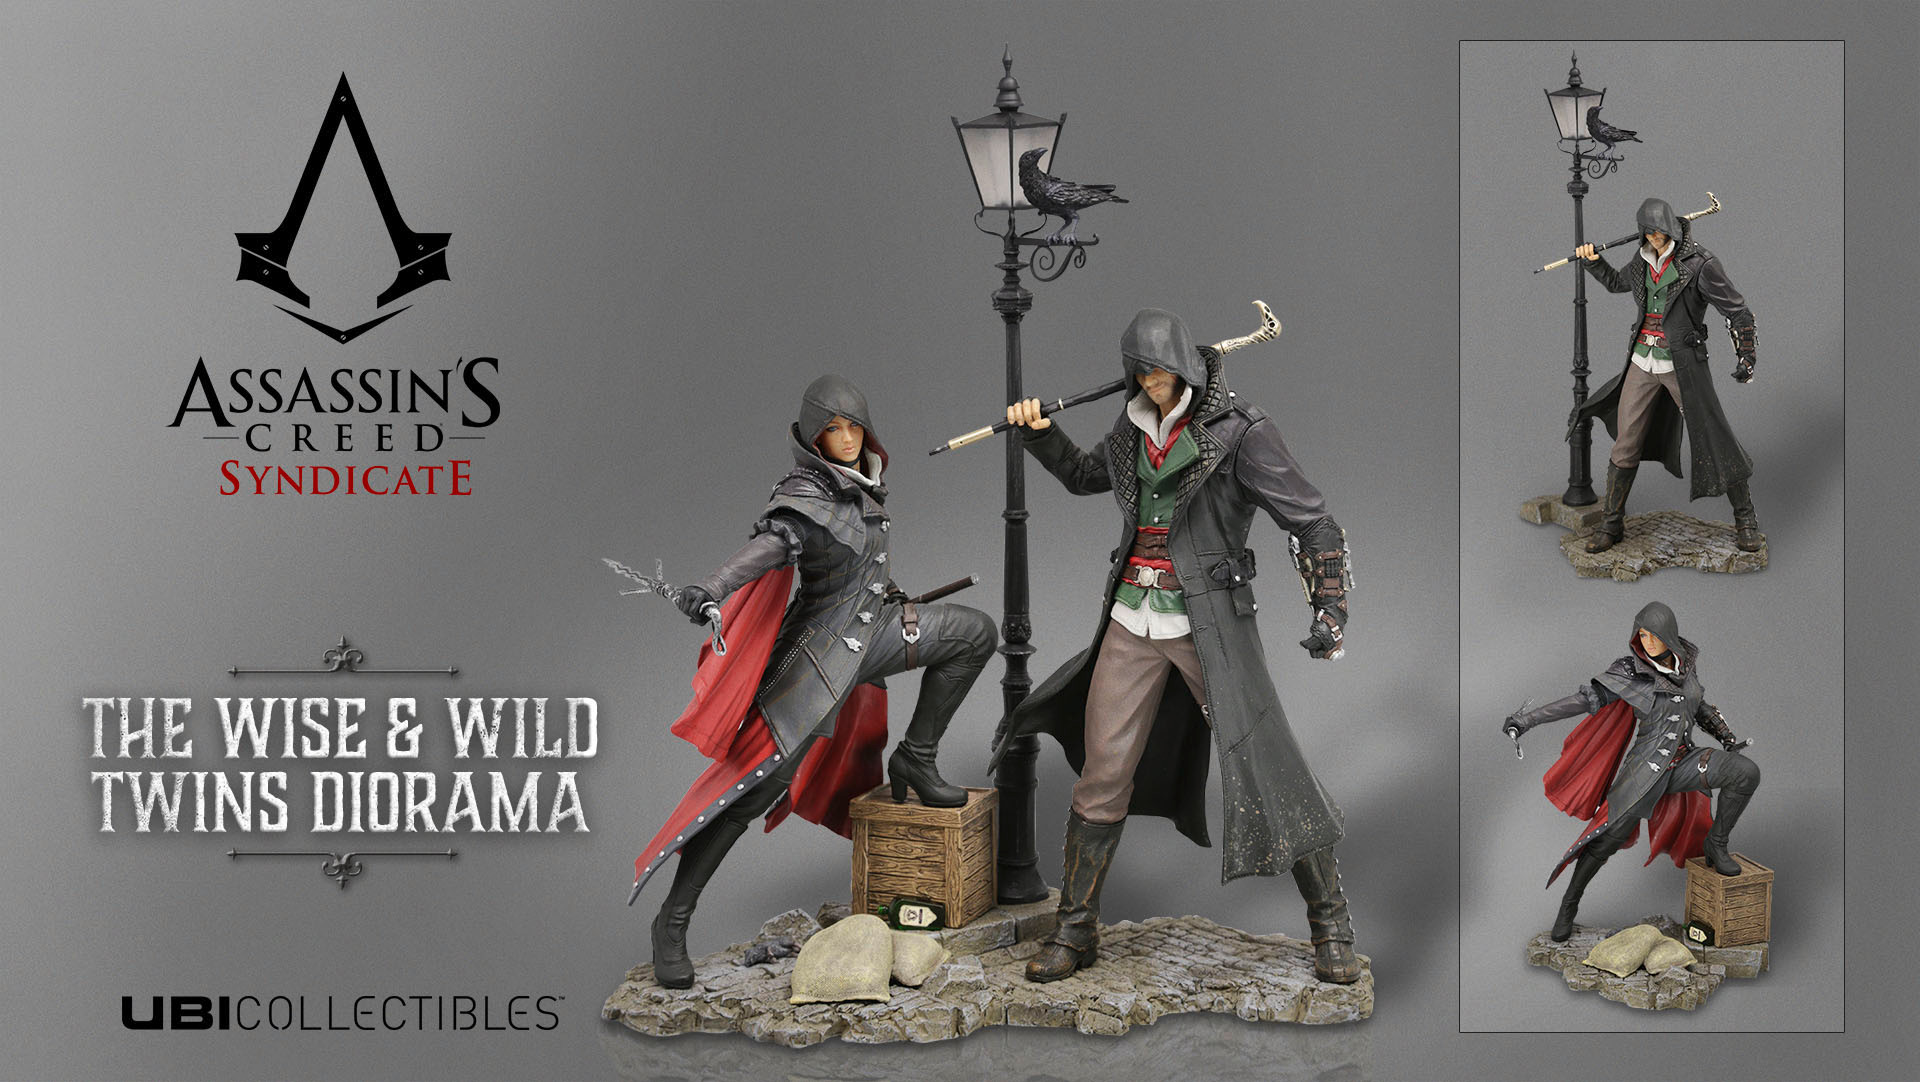 Assassin s creed syndicate to get collectible replica weapons and